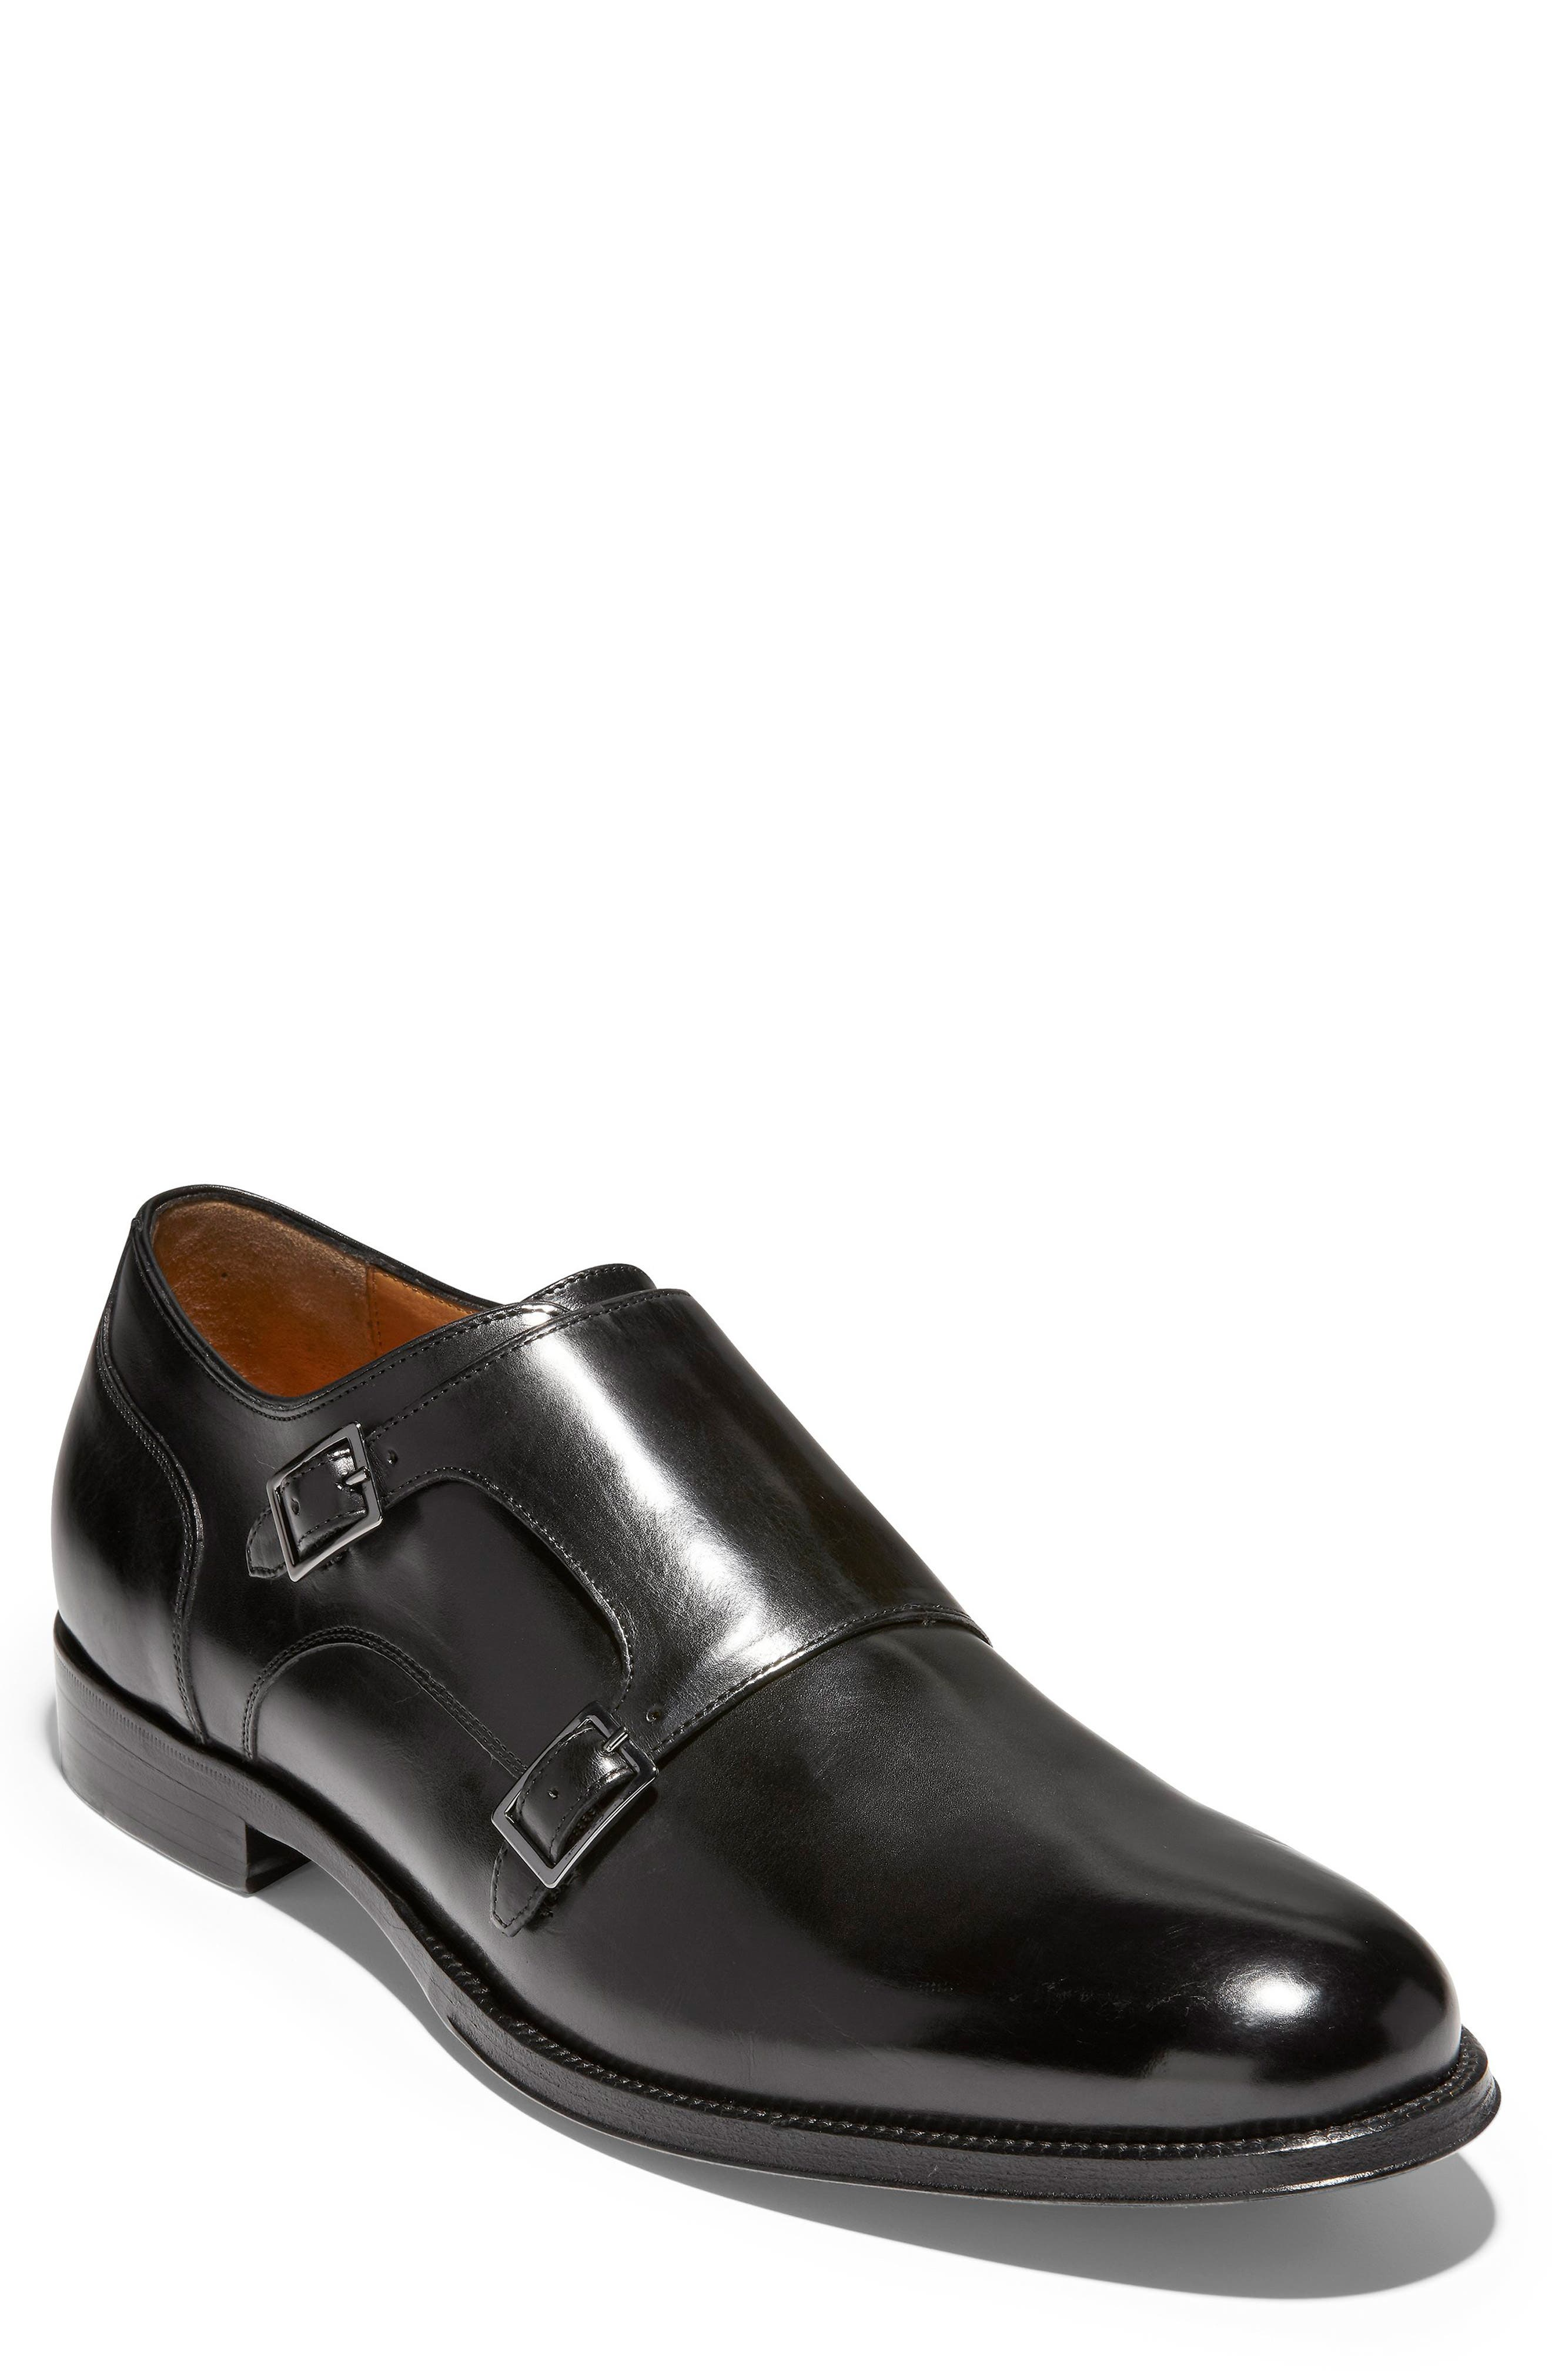 COLE HAAN, American Classics Gramercy Double Strap Monk Shoe, Main thumbnail 1, color, BLACK LEATHER